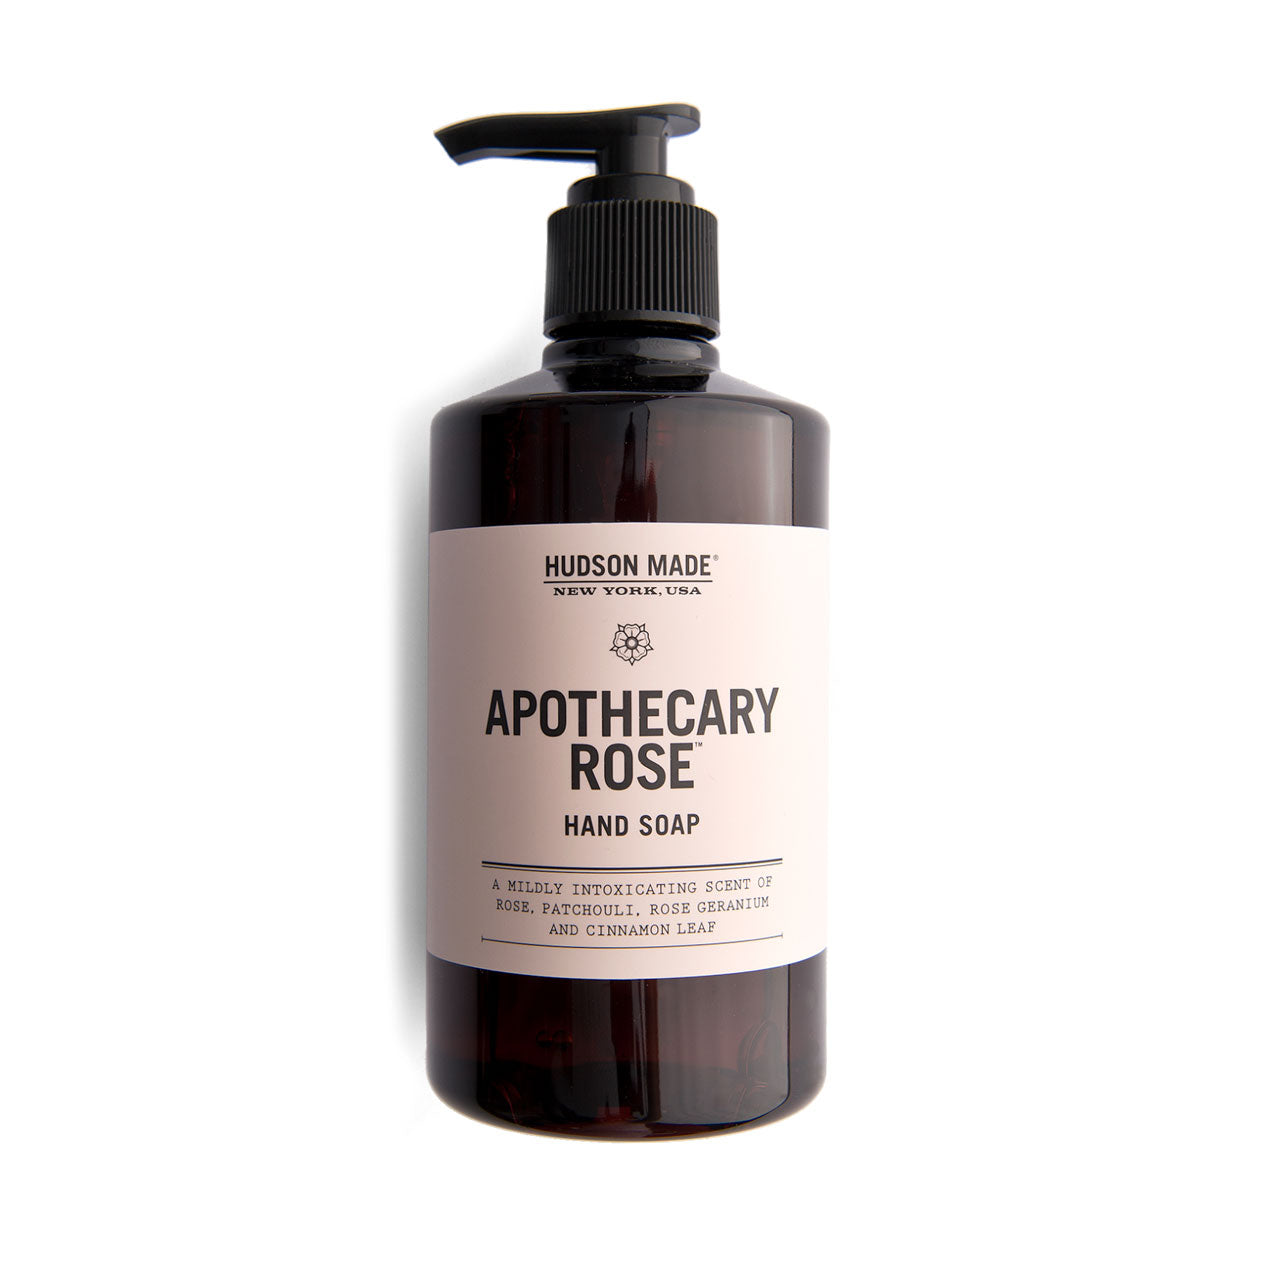 Hudson Made Apothecary Rose Hand Soap